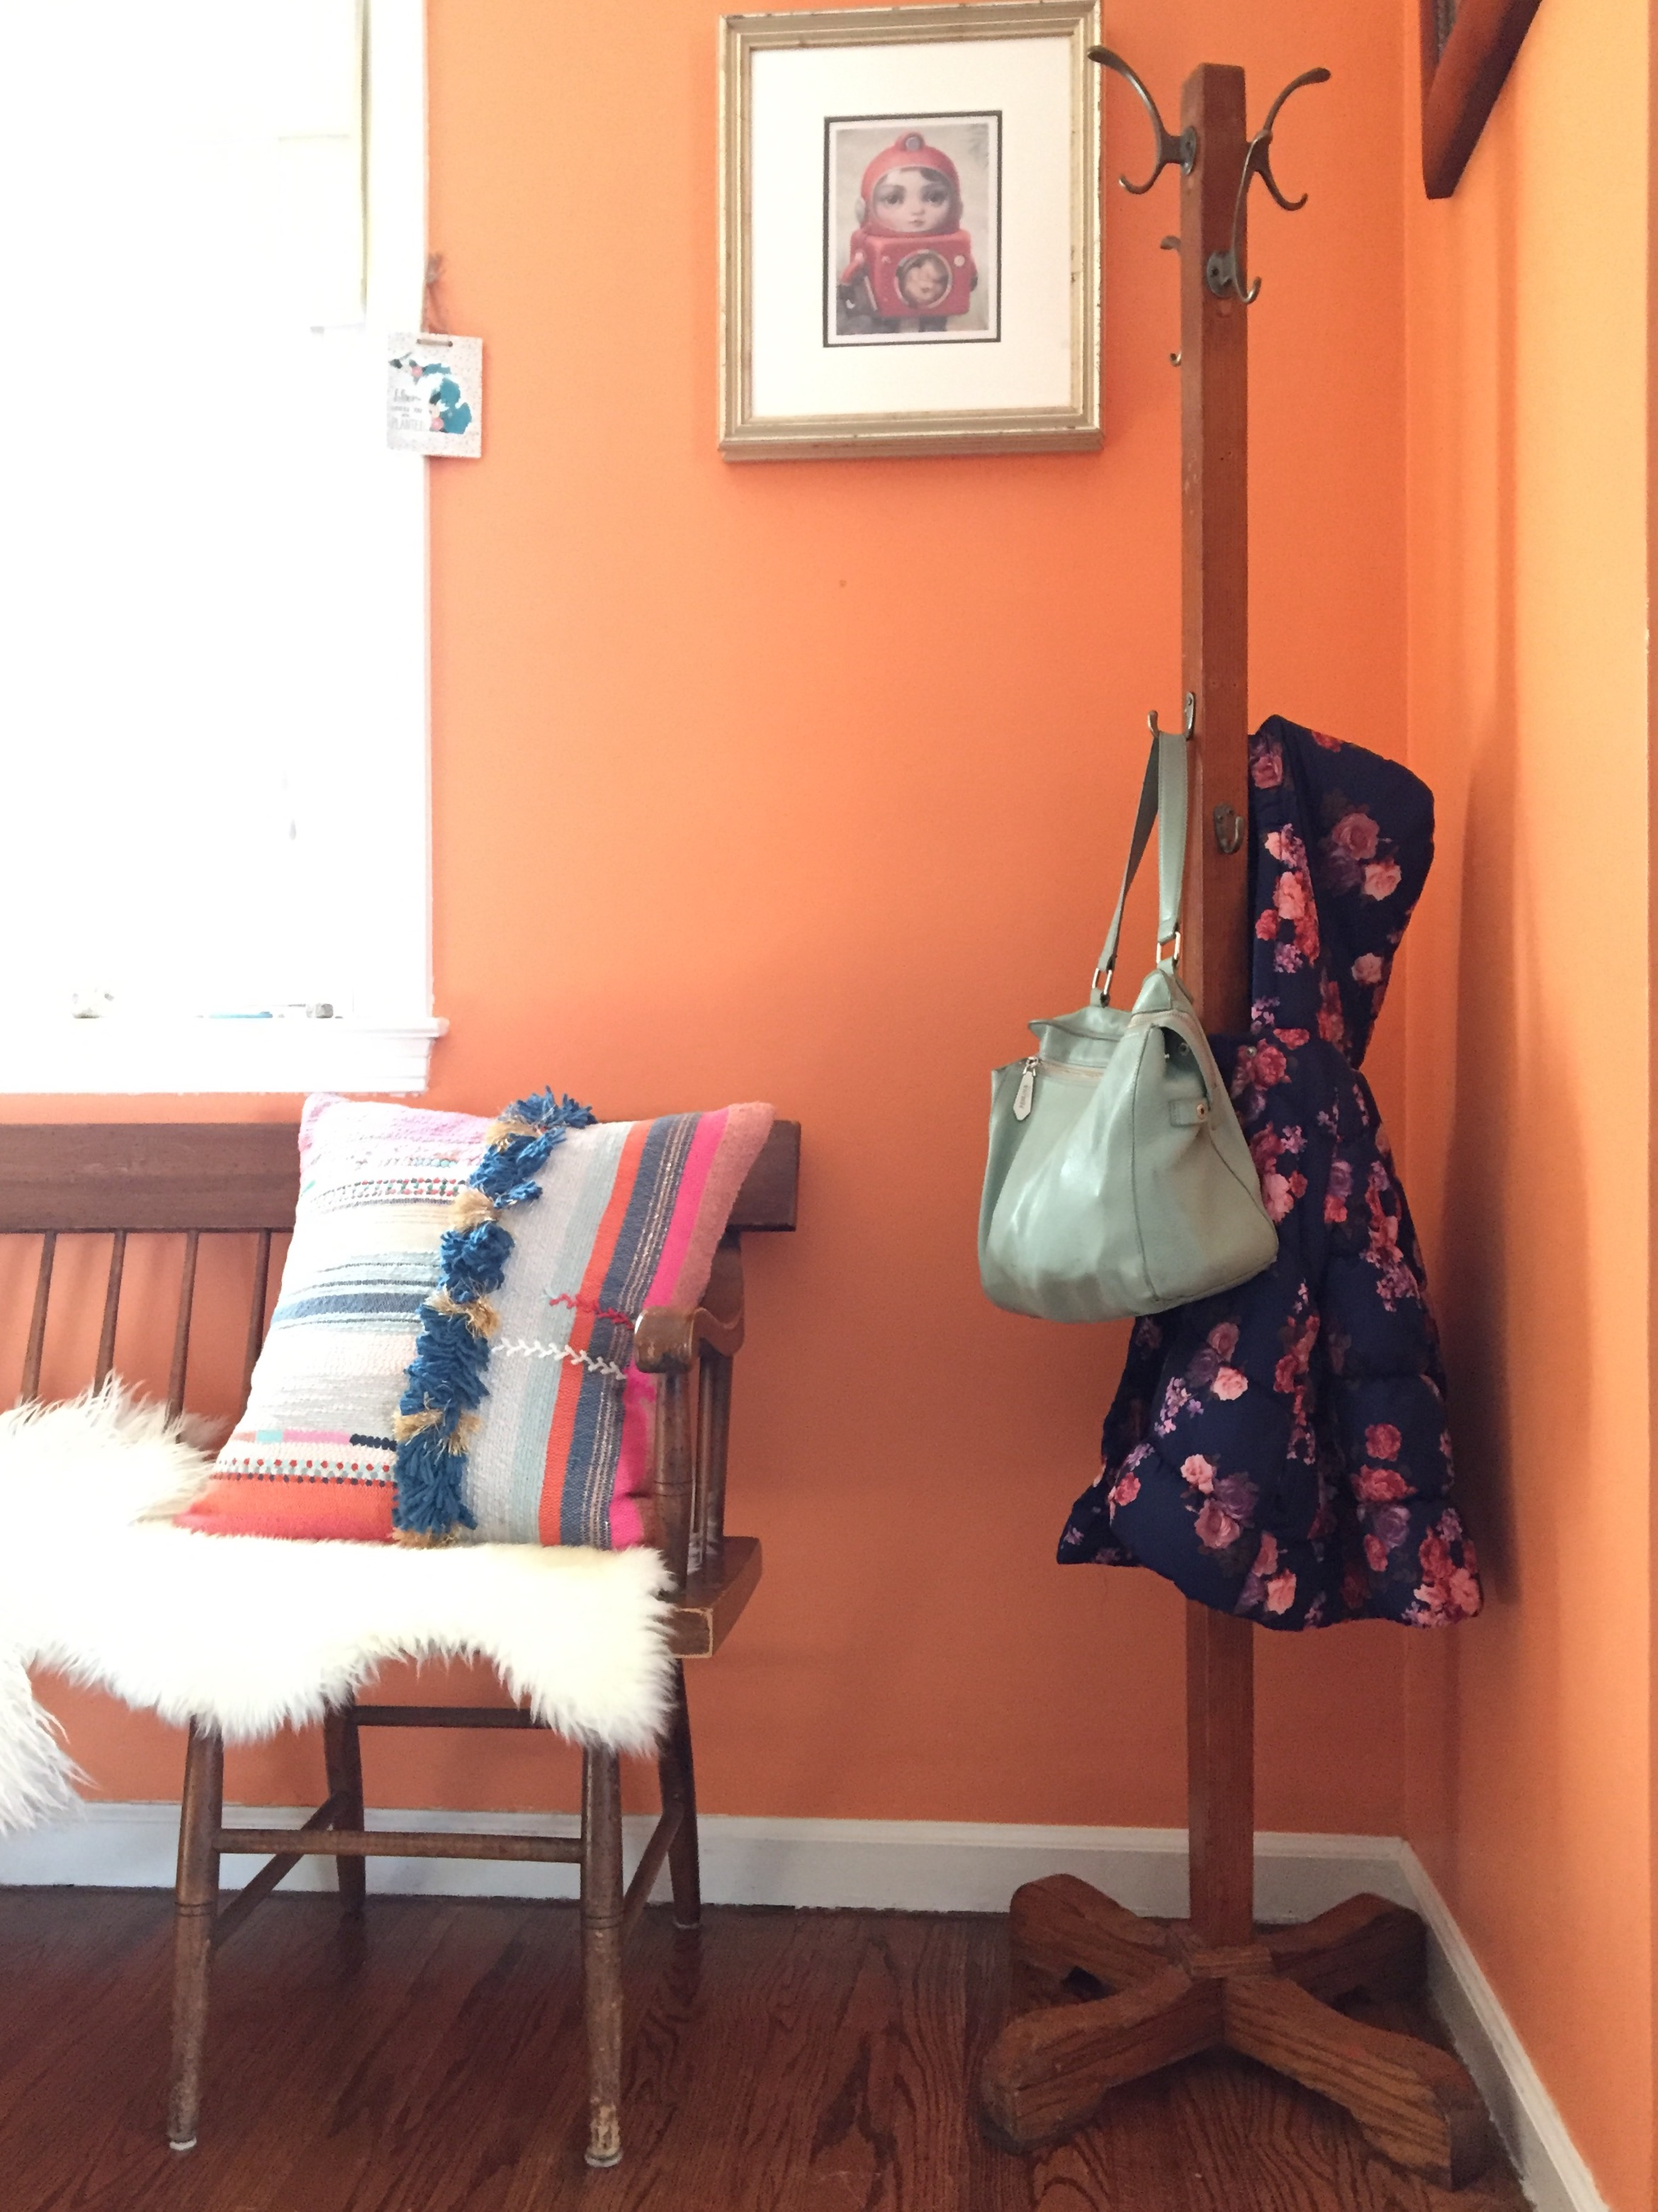 And here's a close-up of the coat rack side where the only thing on it is a purse and a cute little flower coat that take up very little visual space and happen to match perfectly with everything else in this space (more reality).